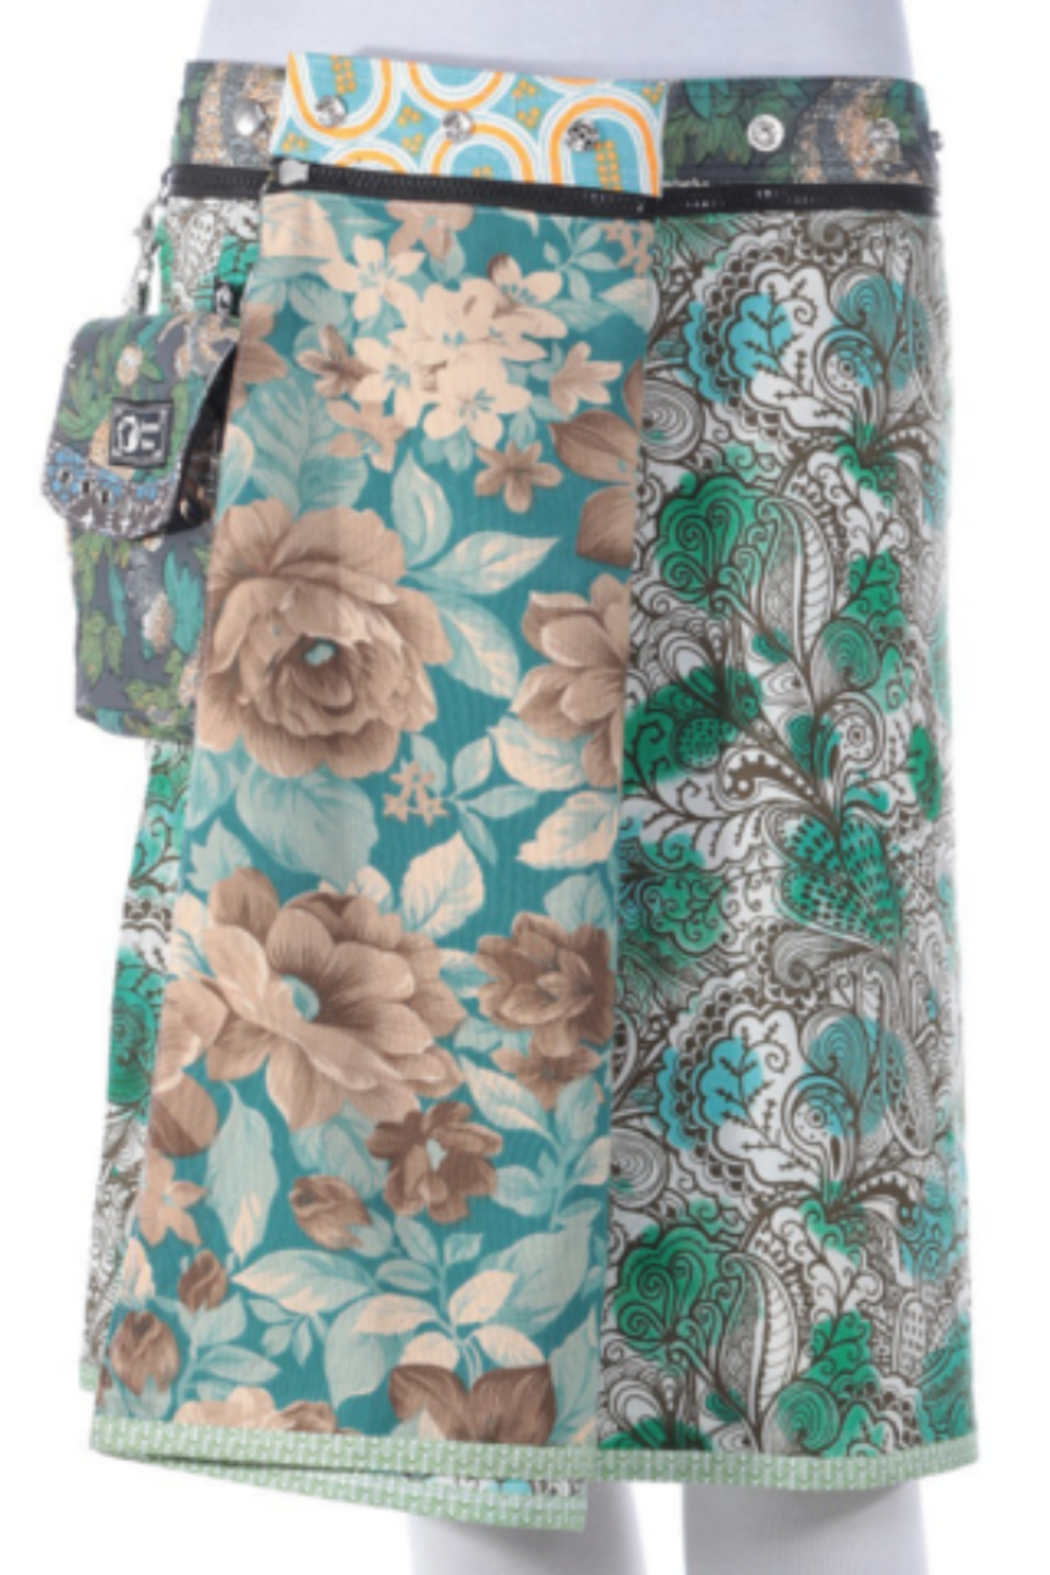 IBIZA Rayon Reversible Skirt with Detachable Pouch (sizes 0-12 and 21-22